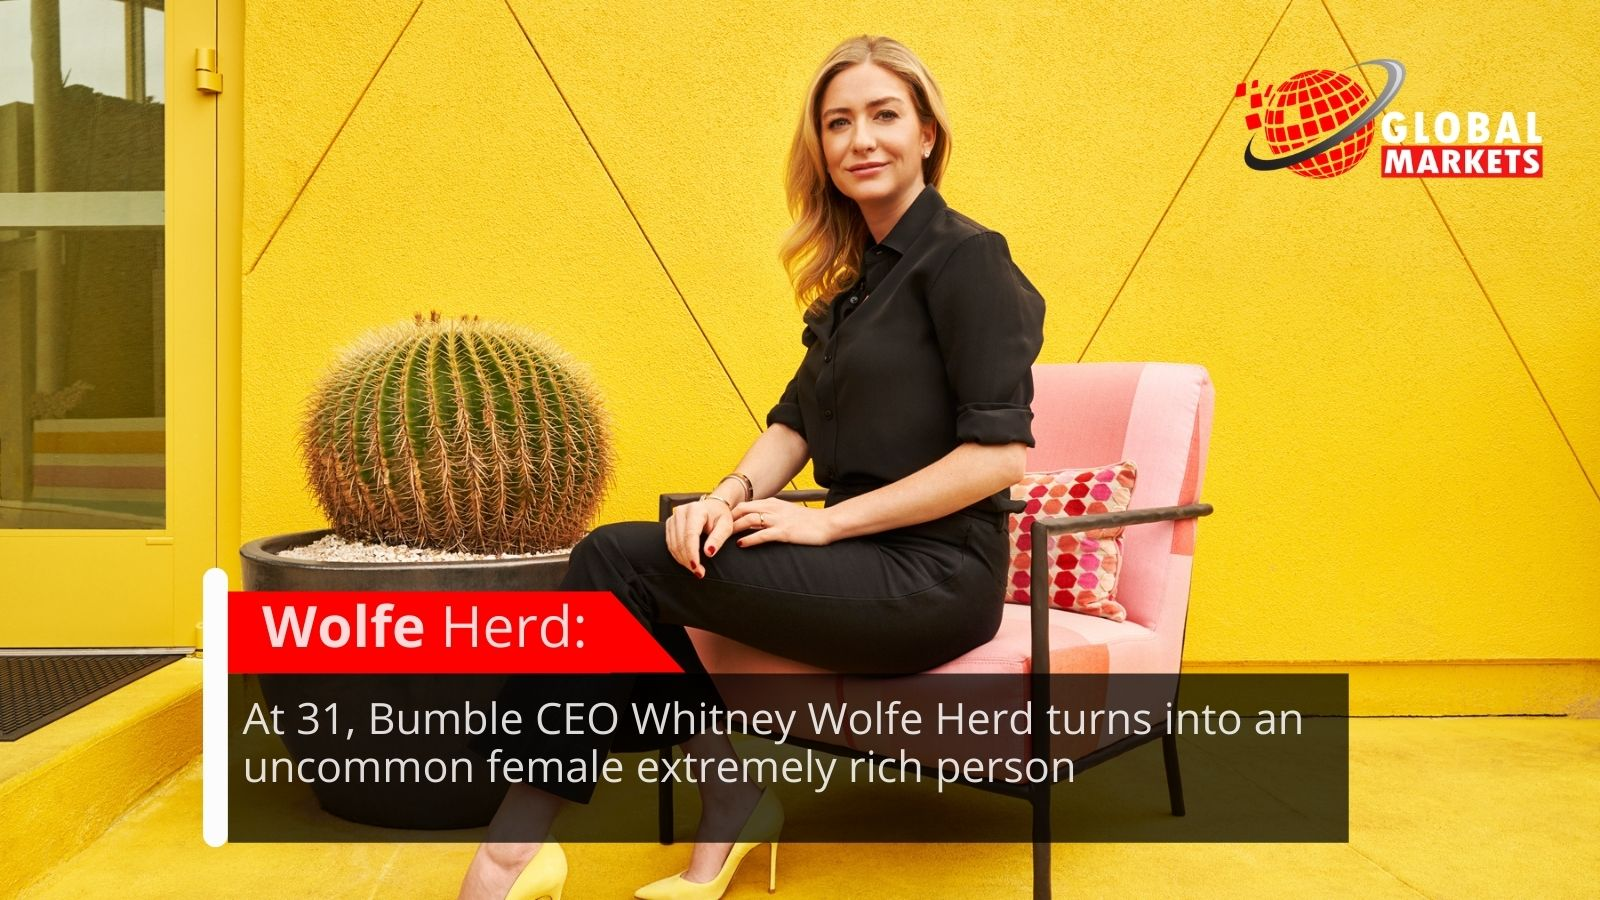 At 31, Bumble CEO Whitney Wolfe Herd turns into an uncommon female extremely rich person